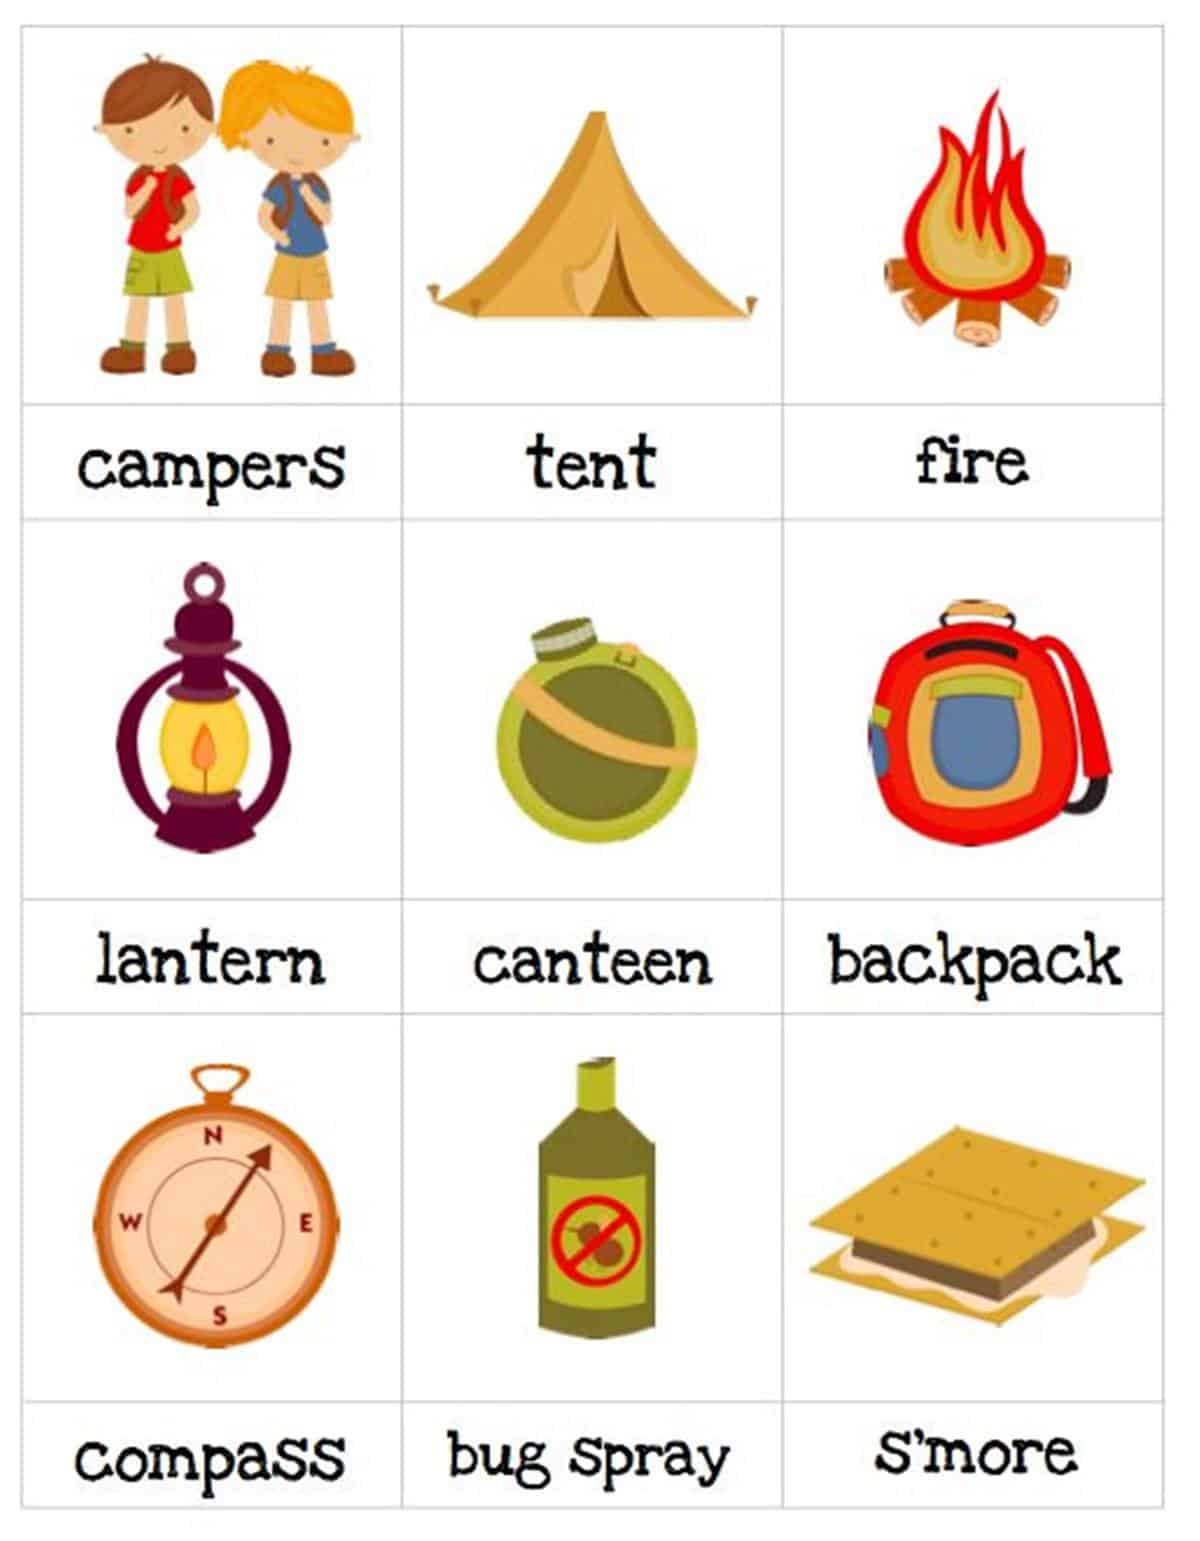 English Vocabulary Camping Tool Set